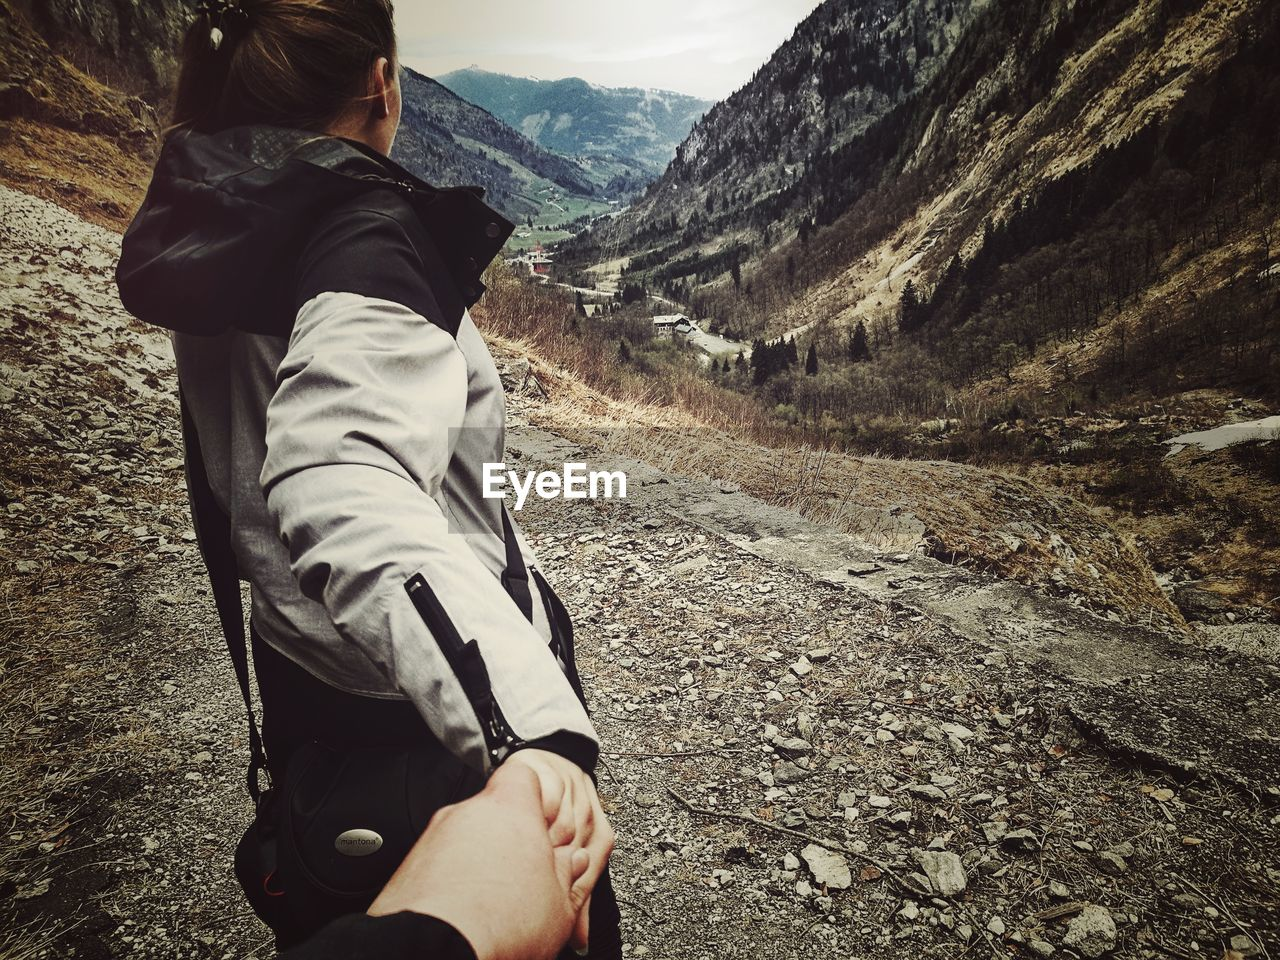 real people, mountain, leisure activity, one person, lifestyles, nature, hiking, walking, landscape, men, day, outdoors, mountain range, adventure, standing, low section, human hand, close-up, people